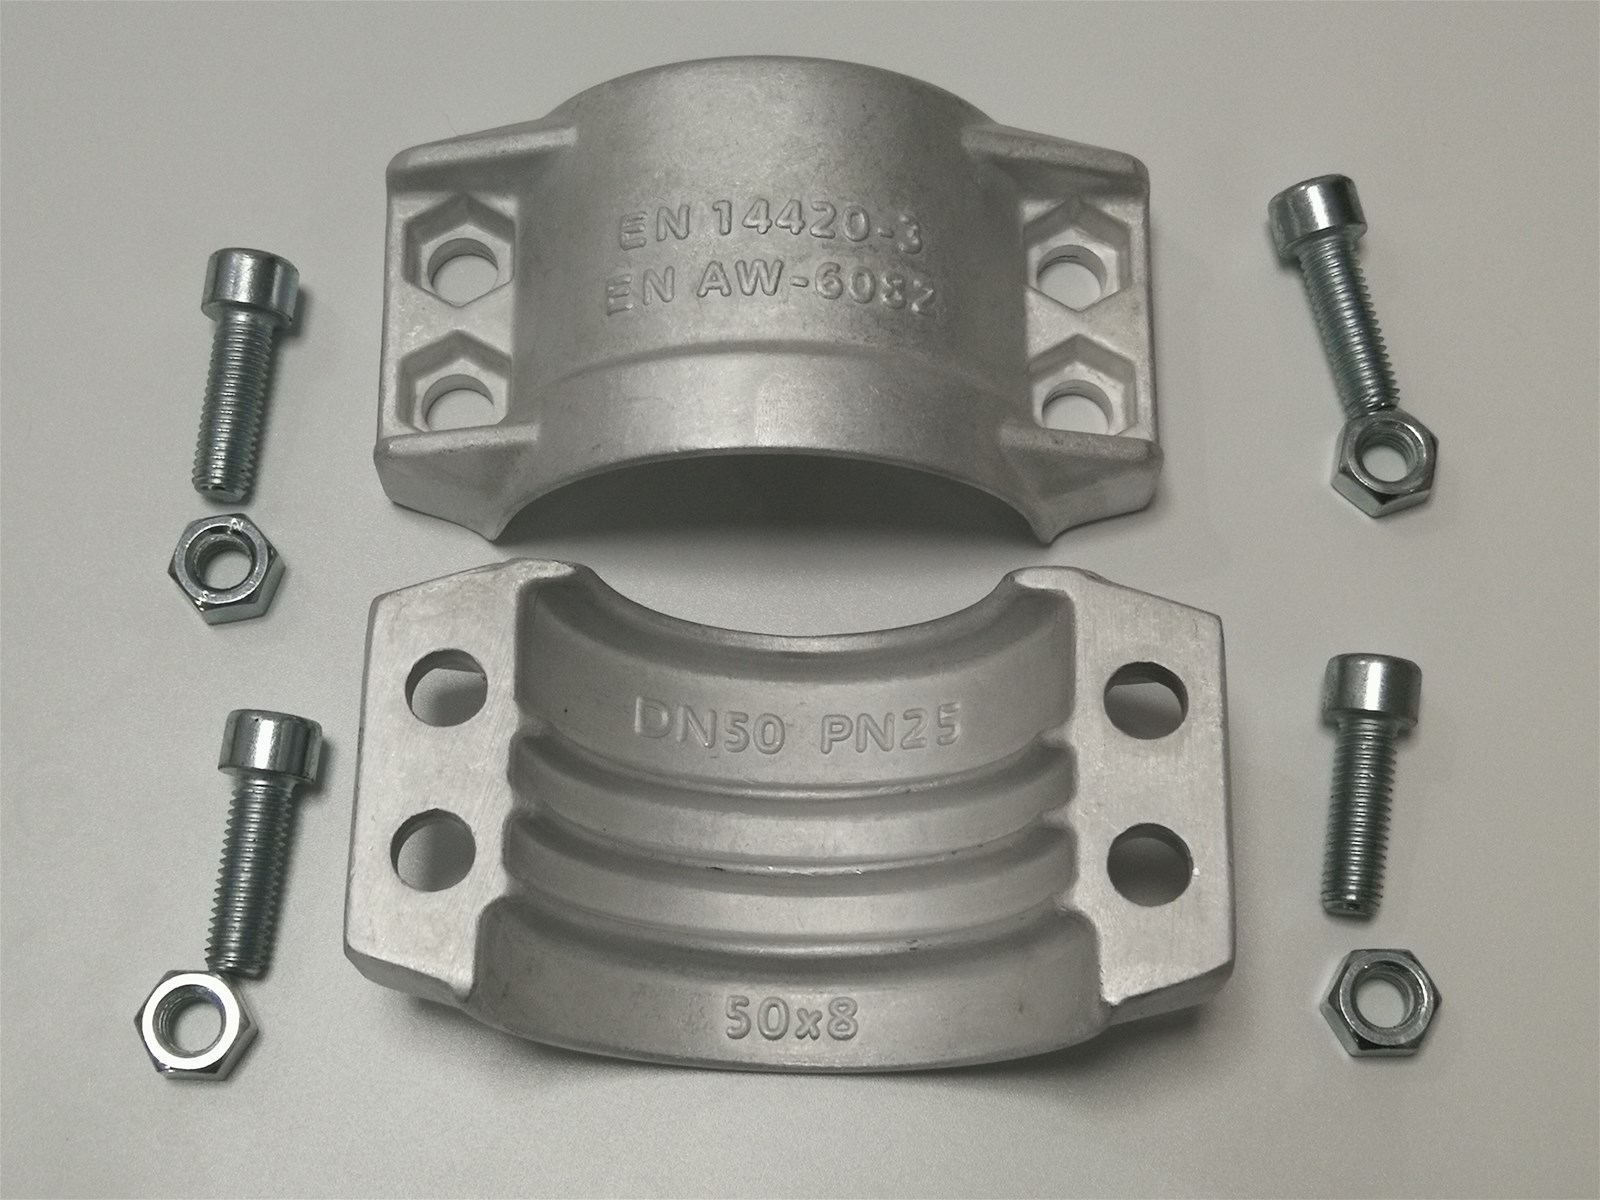 Stainless Steel/Aluminum Hose Tail Coupling Casting Forging DIN 2817 Fittings & Safety Clamps